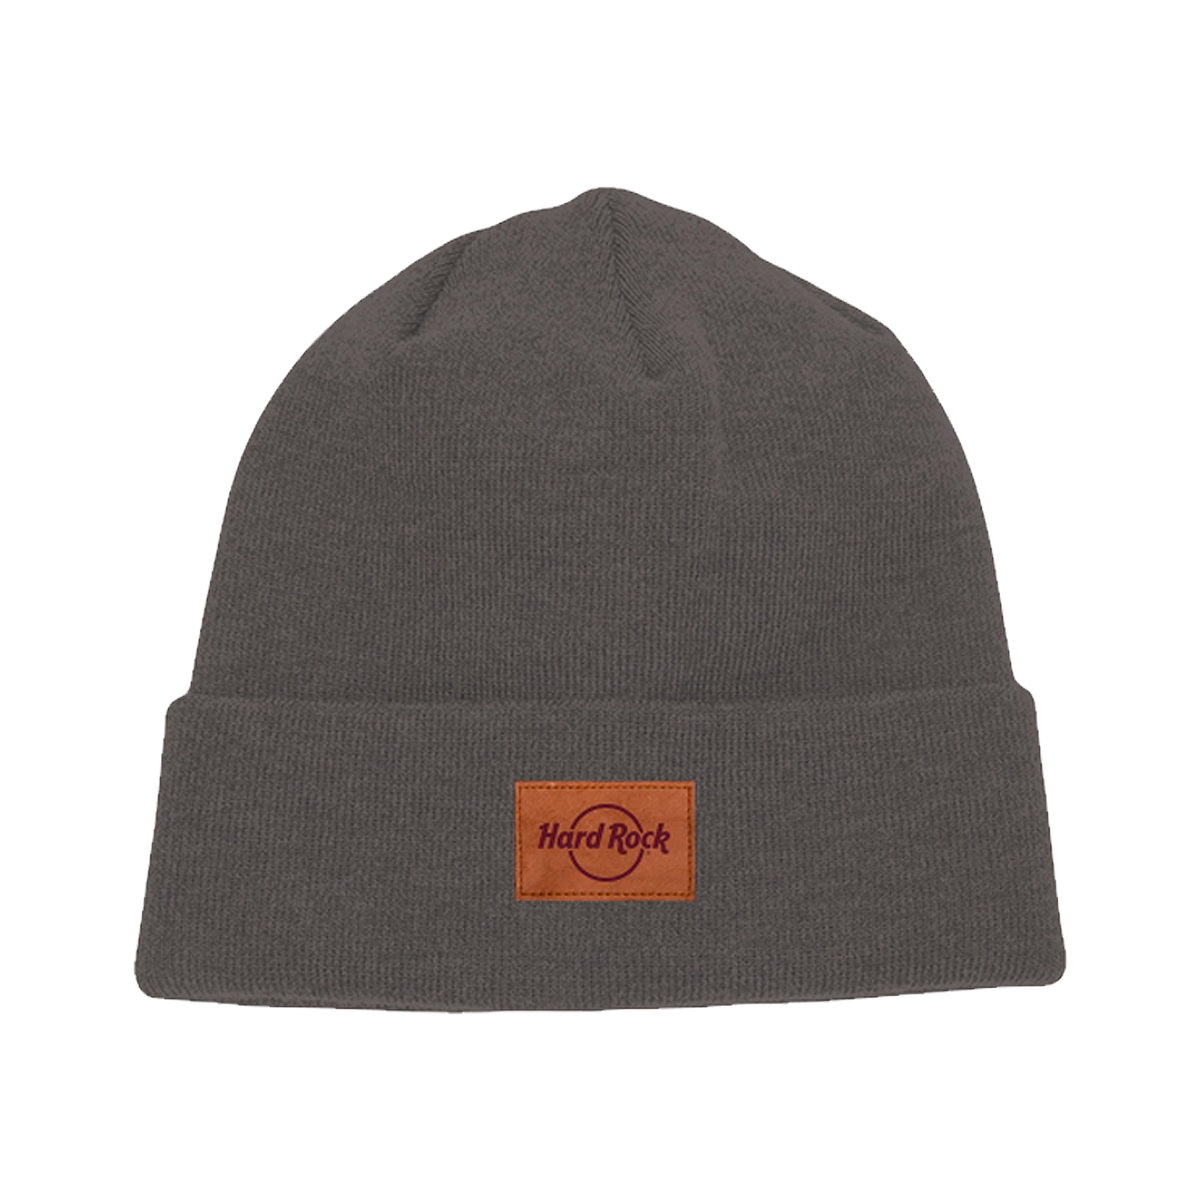 Hard Rock Essentials Beanie 0